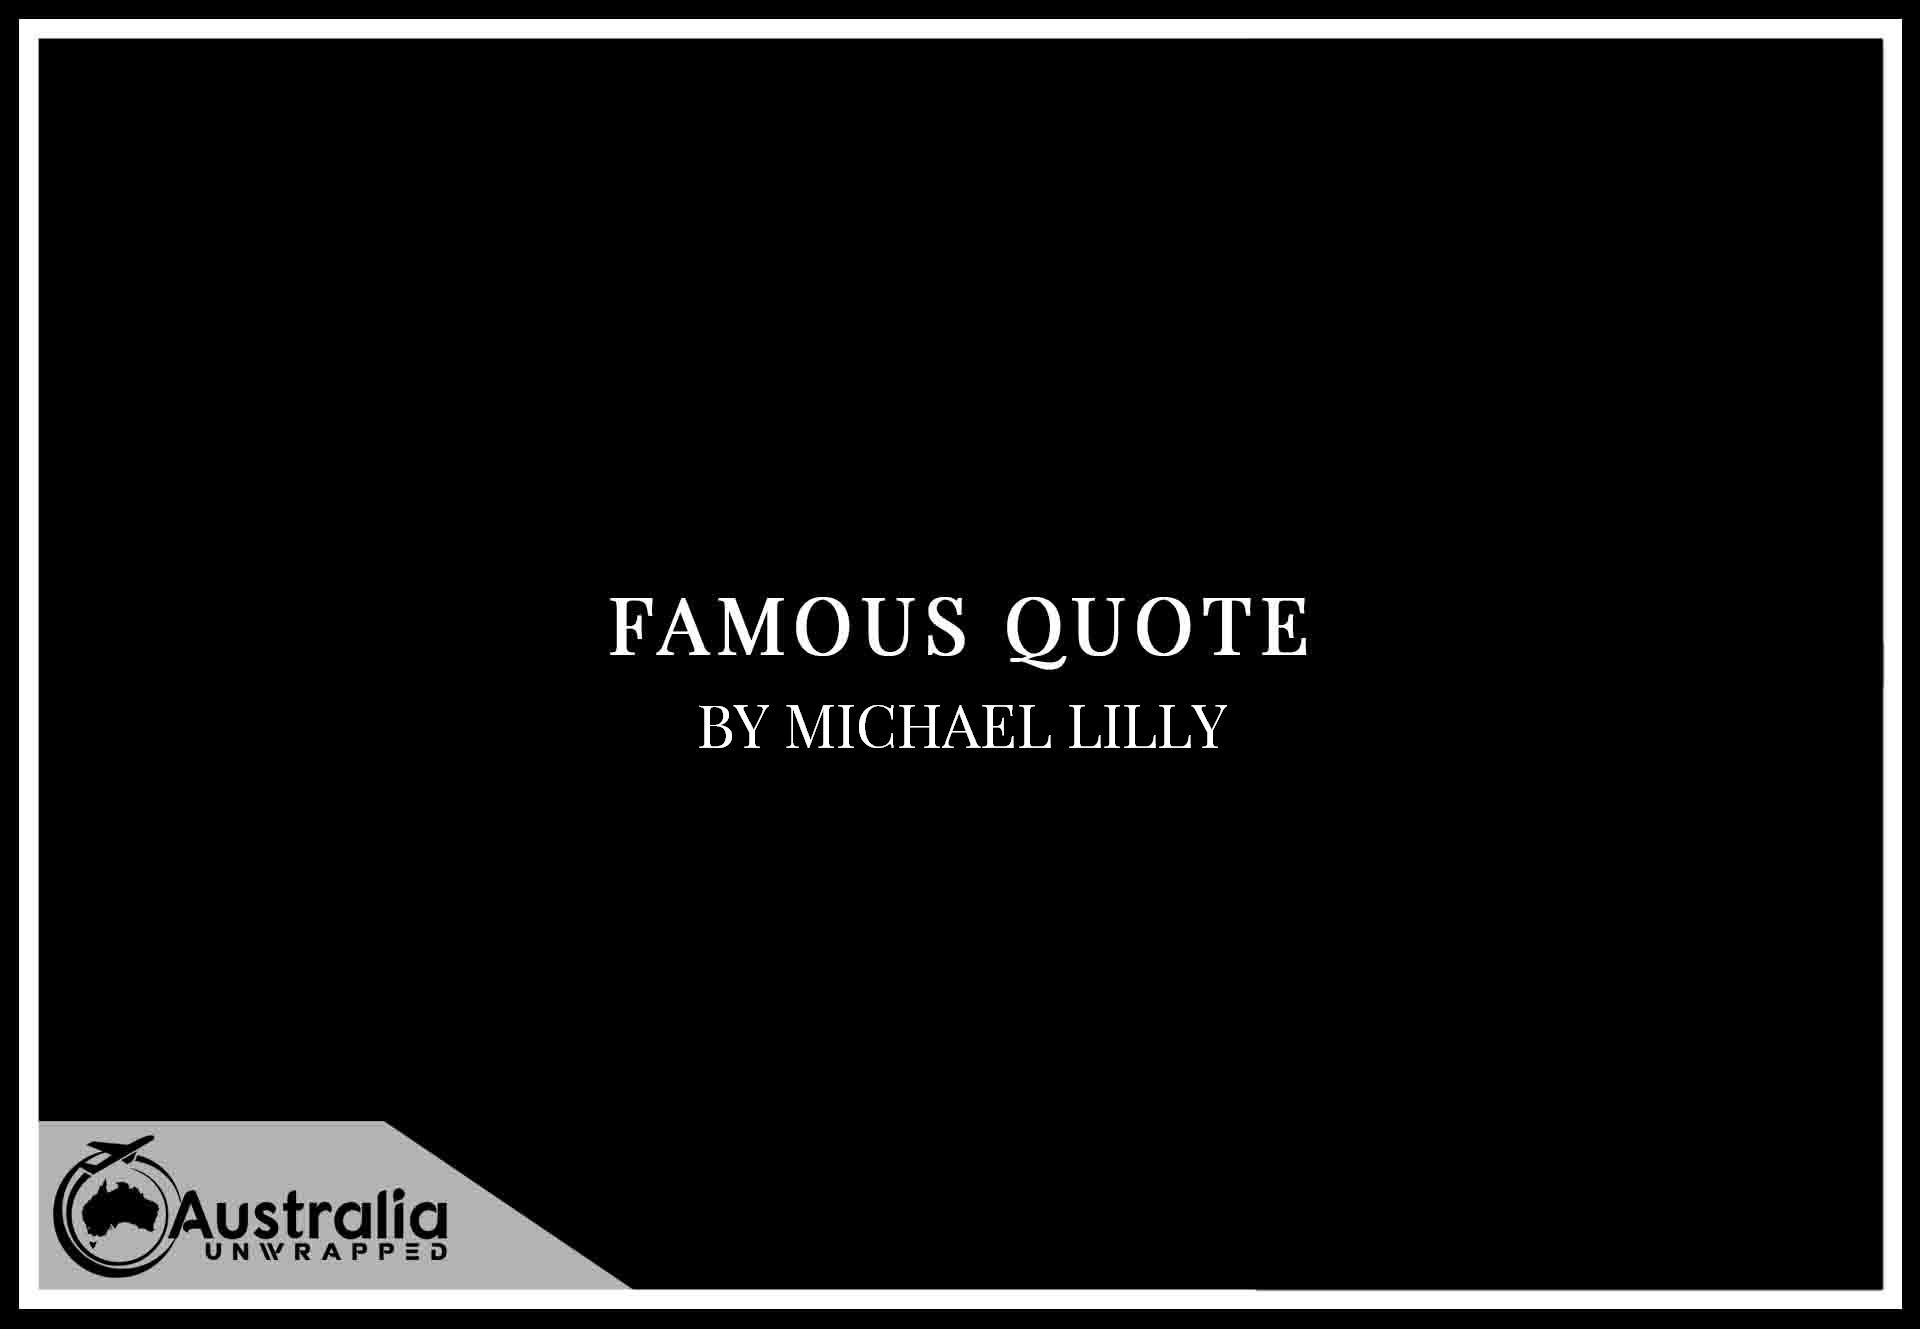 Top 1 Famous Quotes by Author Michael Lilly